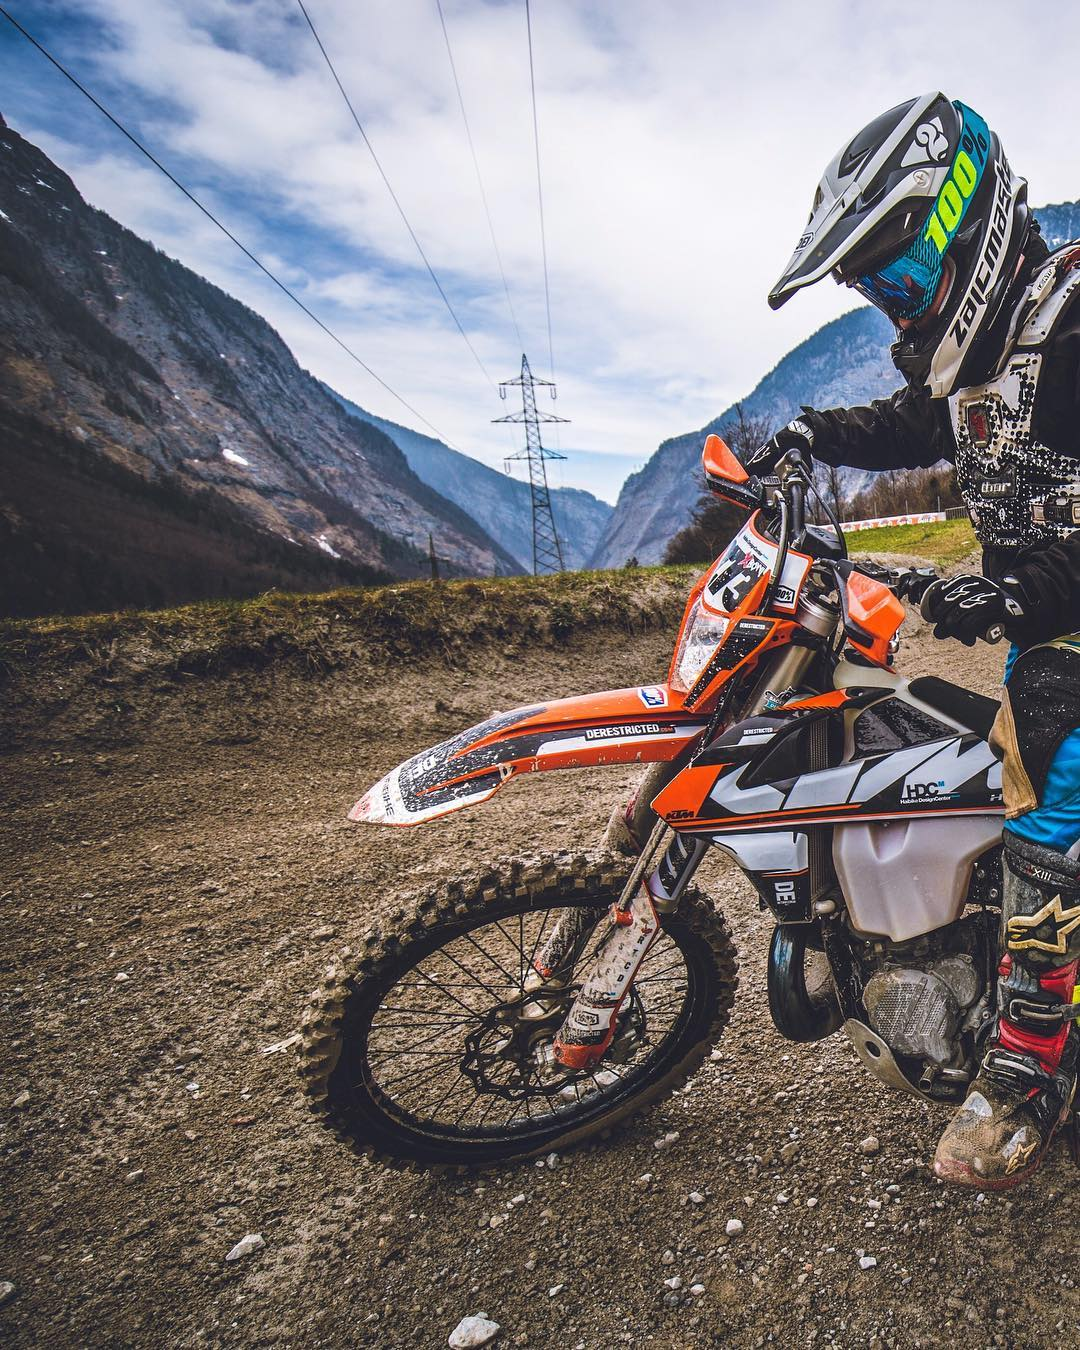 Flashback to @xbowlarena and ripping laps with @zajcmaster . #moto #enduro #ride100percent